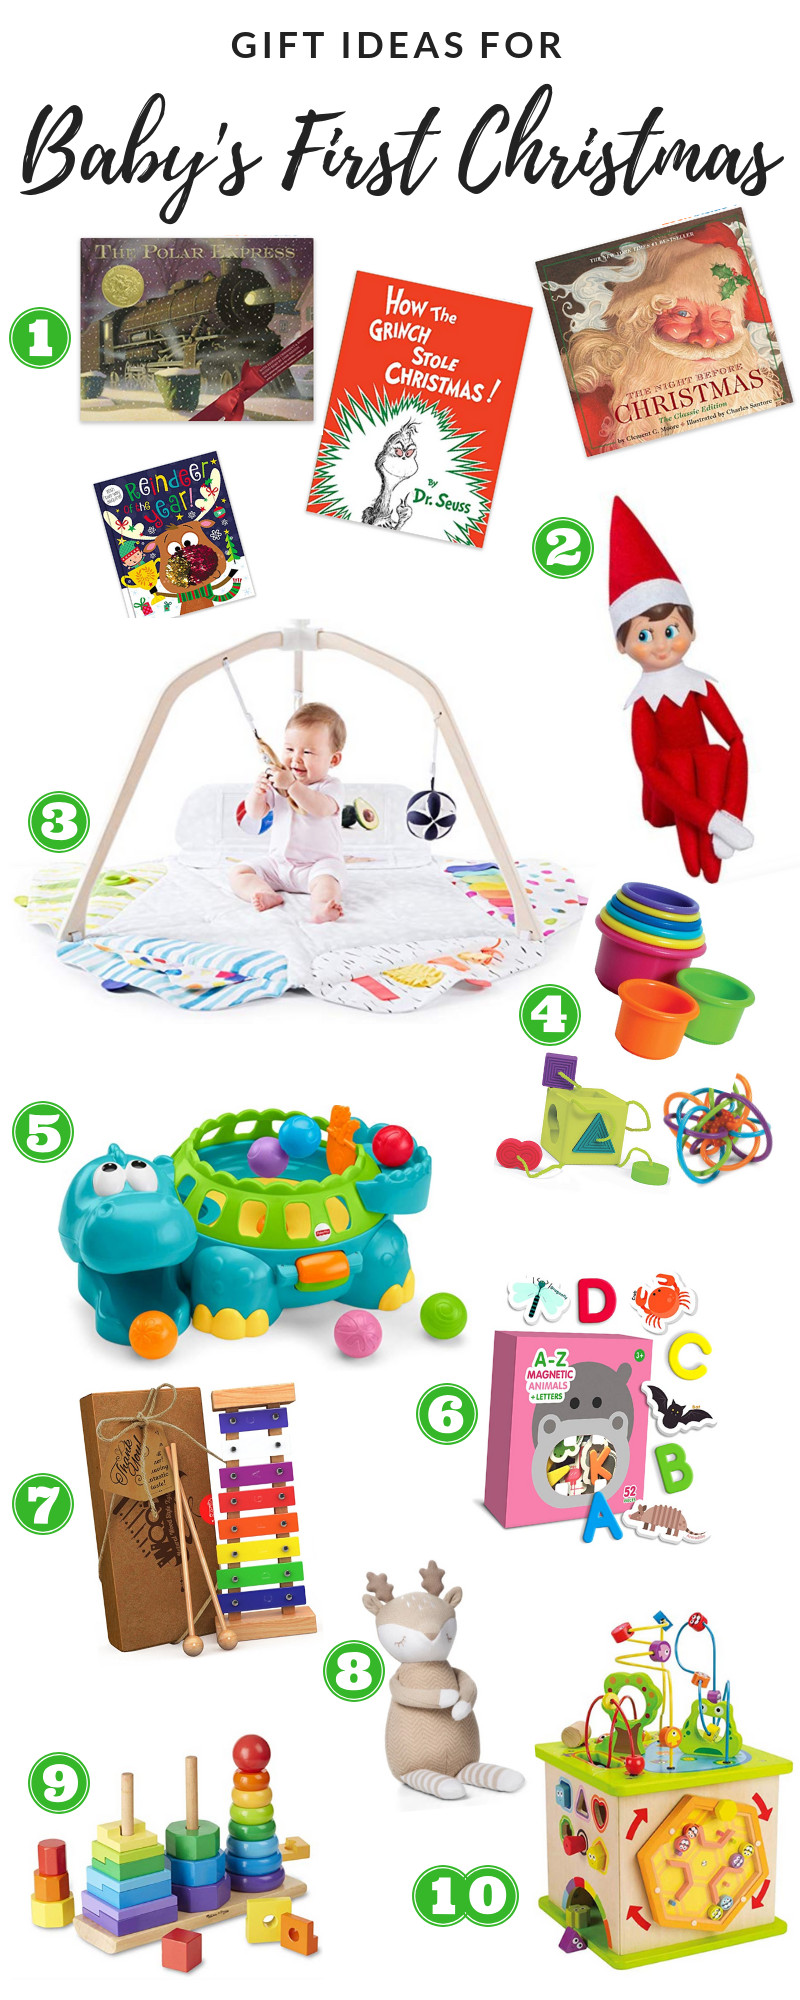 Christmas Gift Ideas From Baby  Gift Ideas For Baby s First Christmas Dana Traynor